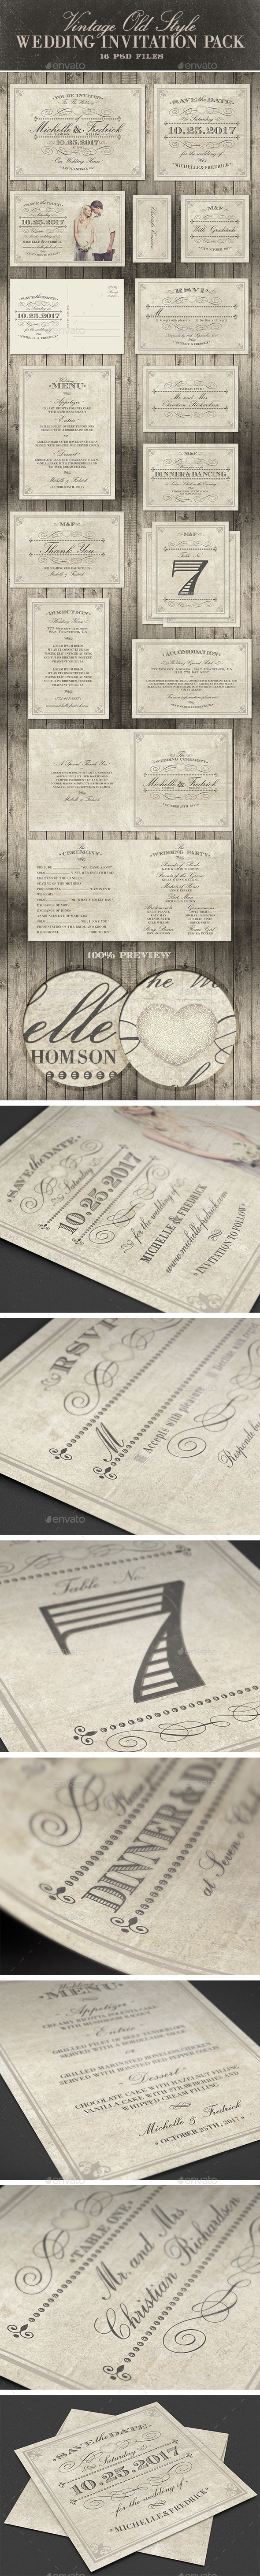 Wedding Invitation Package - Vintage Old Style - Weddings Cards & Invites